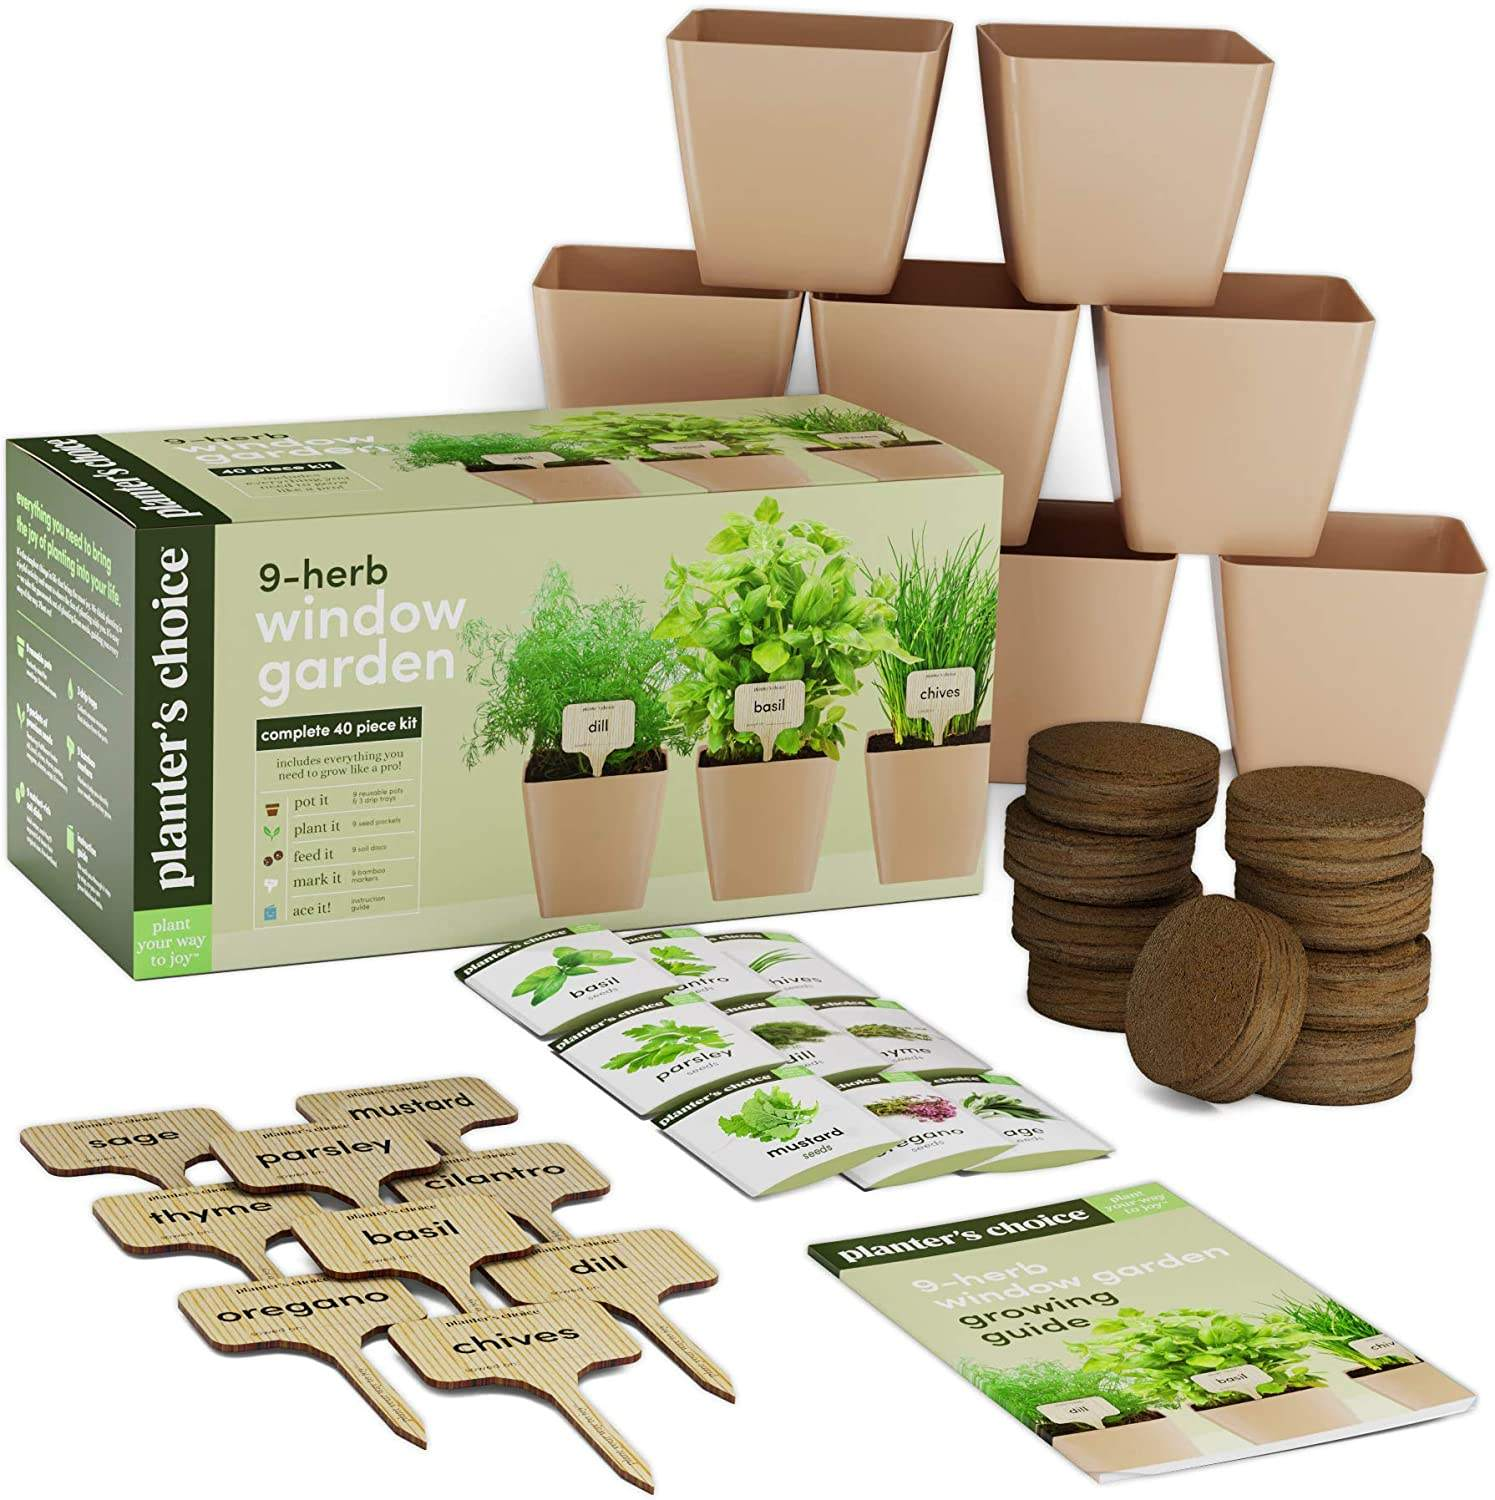 Amazon Hot Seller Unique Gardening Gifts Indoor Organic 9 Herbs Plants Bonsai Starter Kit with Comprehensive Guide